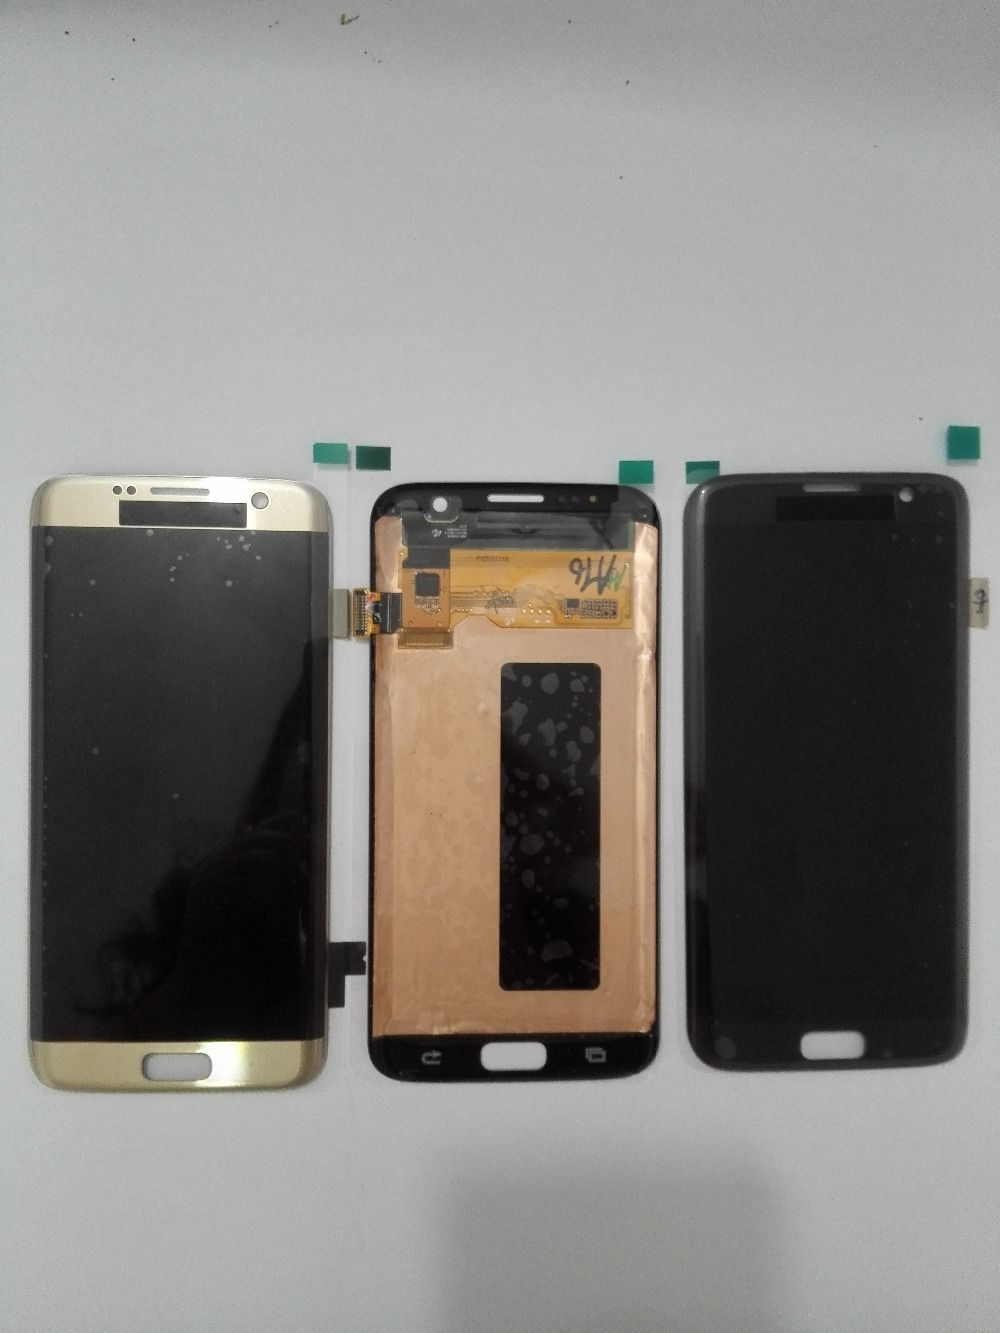 100 Tested For Samsung Galaxy S7 Edge G935 G935f G935a G935fd G935p Lcd Display Touch Screen Digitizer Blue White Gold ホワイトゴールド ブルー ディスプレイ